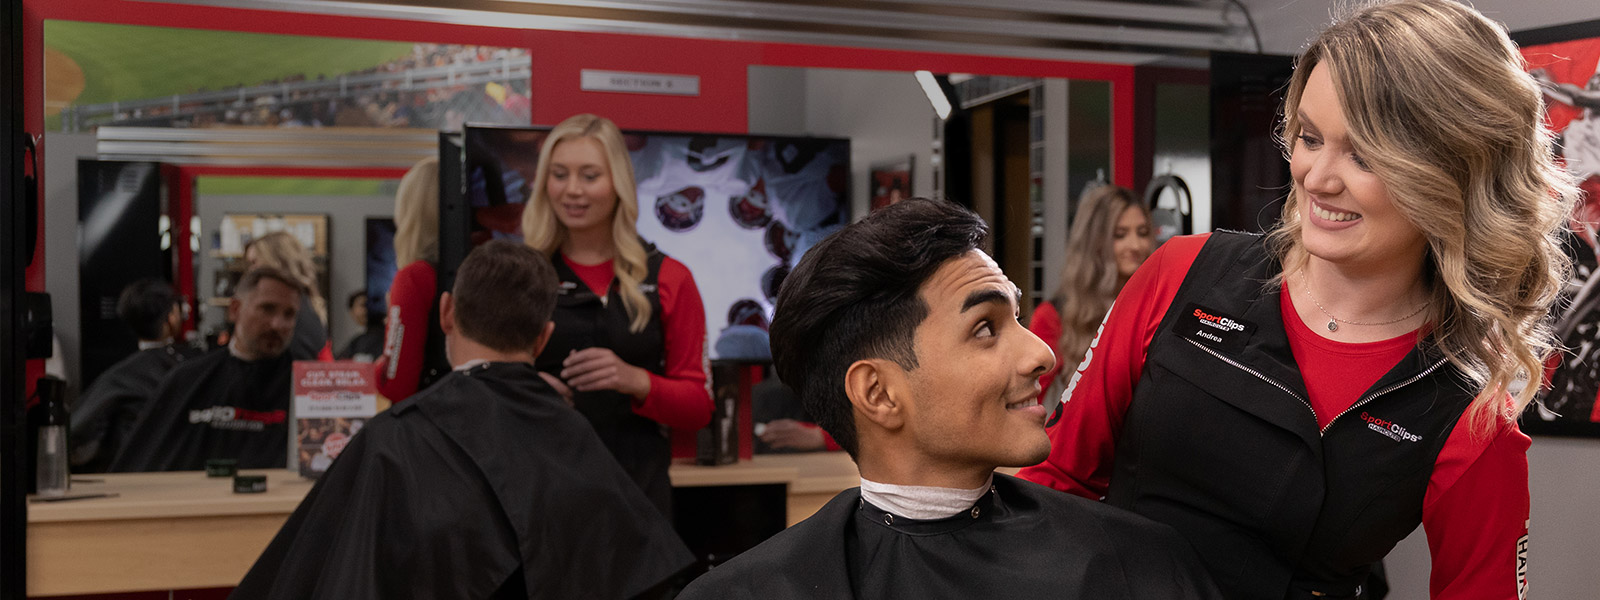 Sport Clips stylist talking to a client